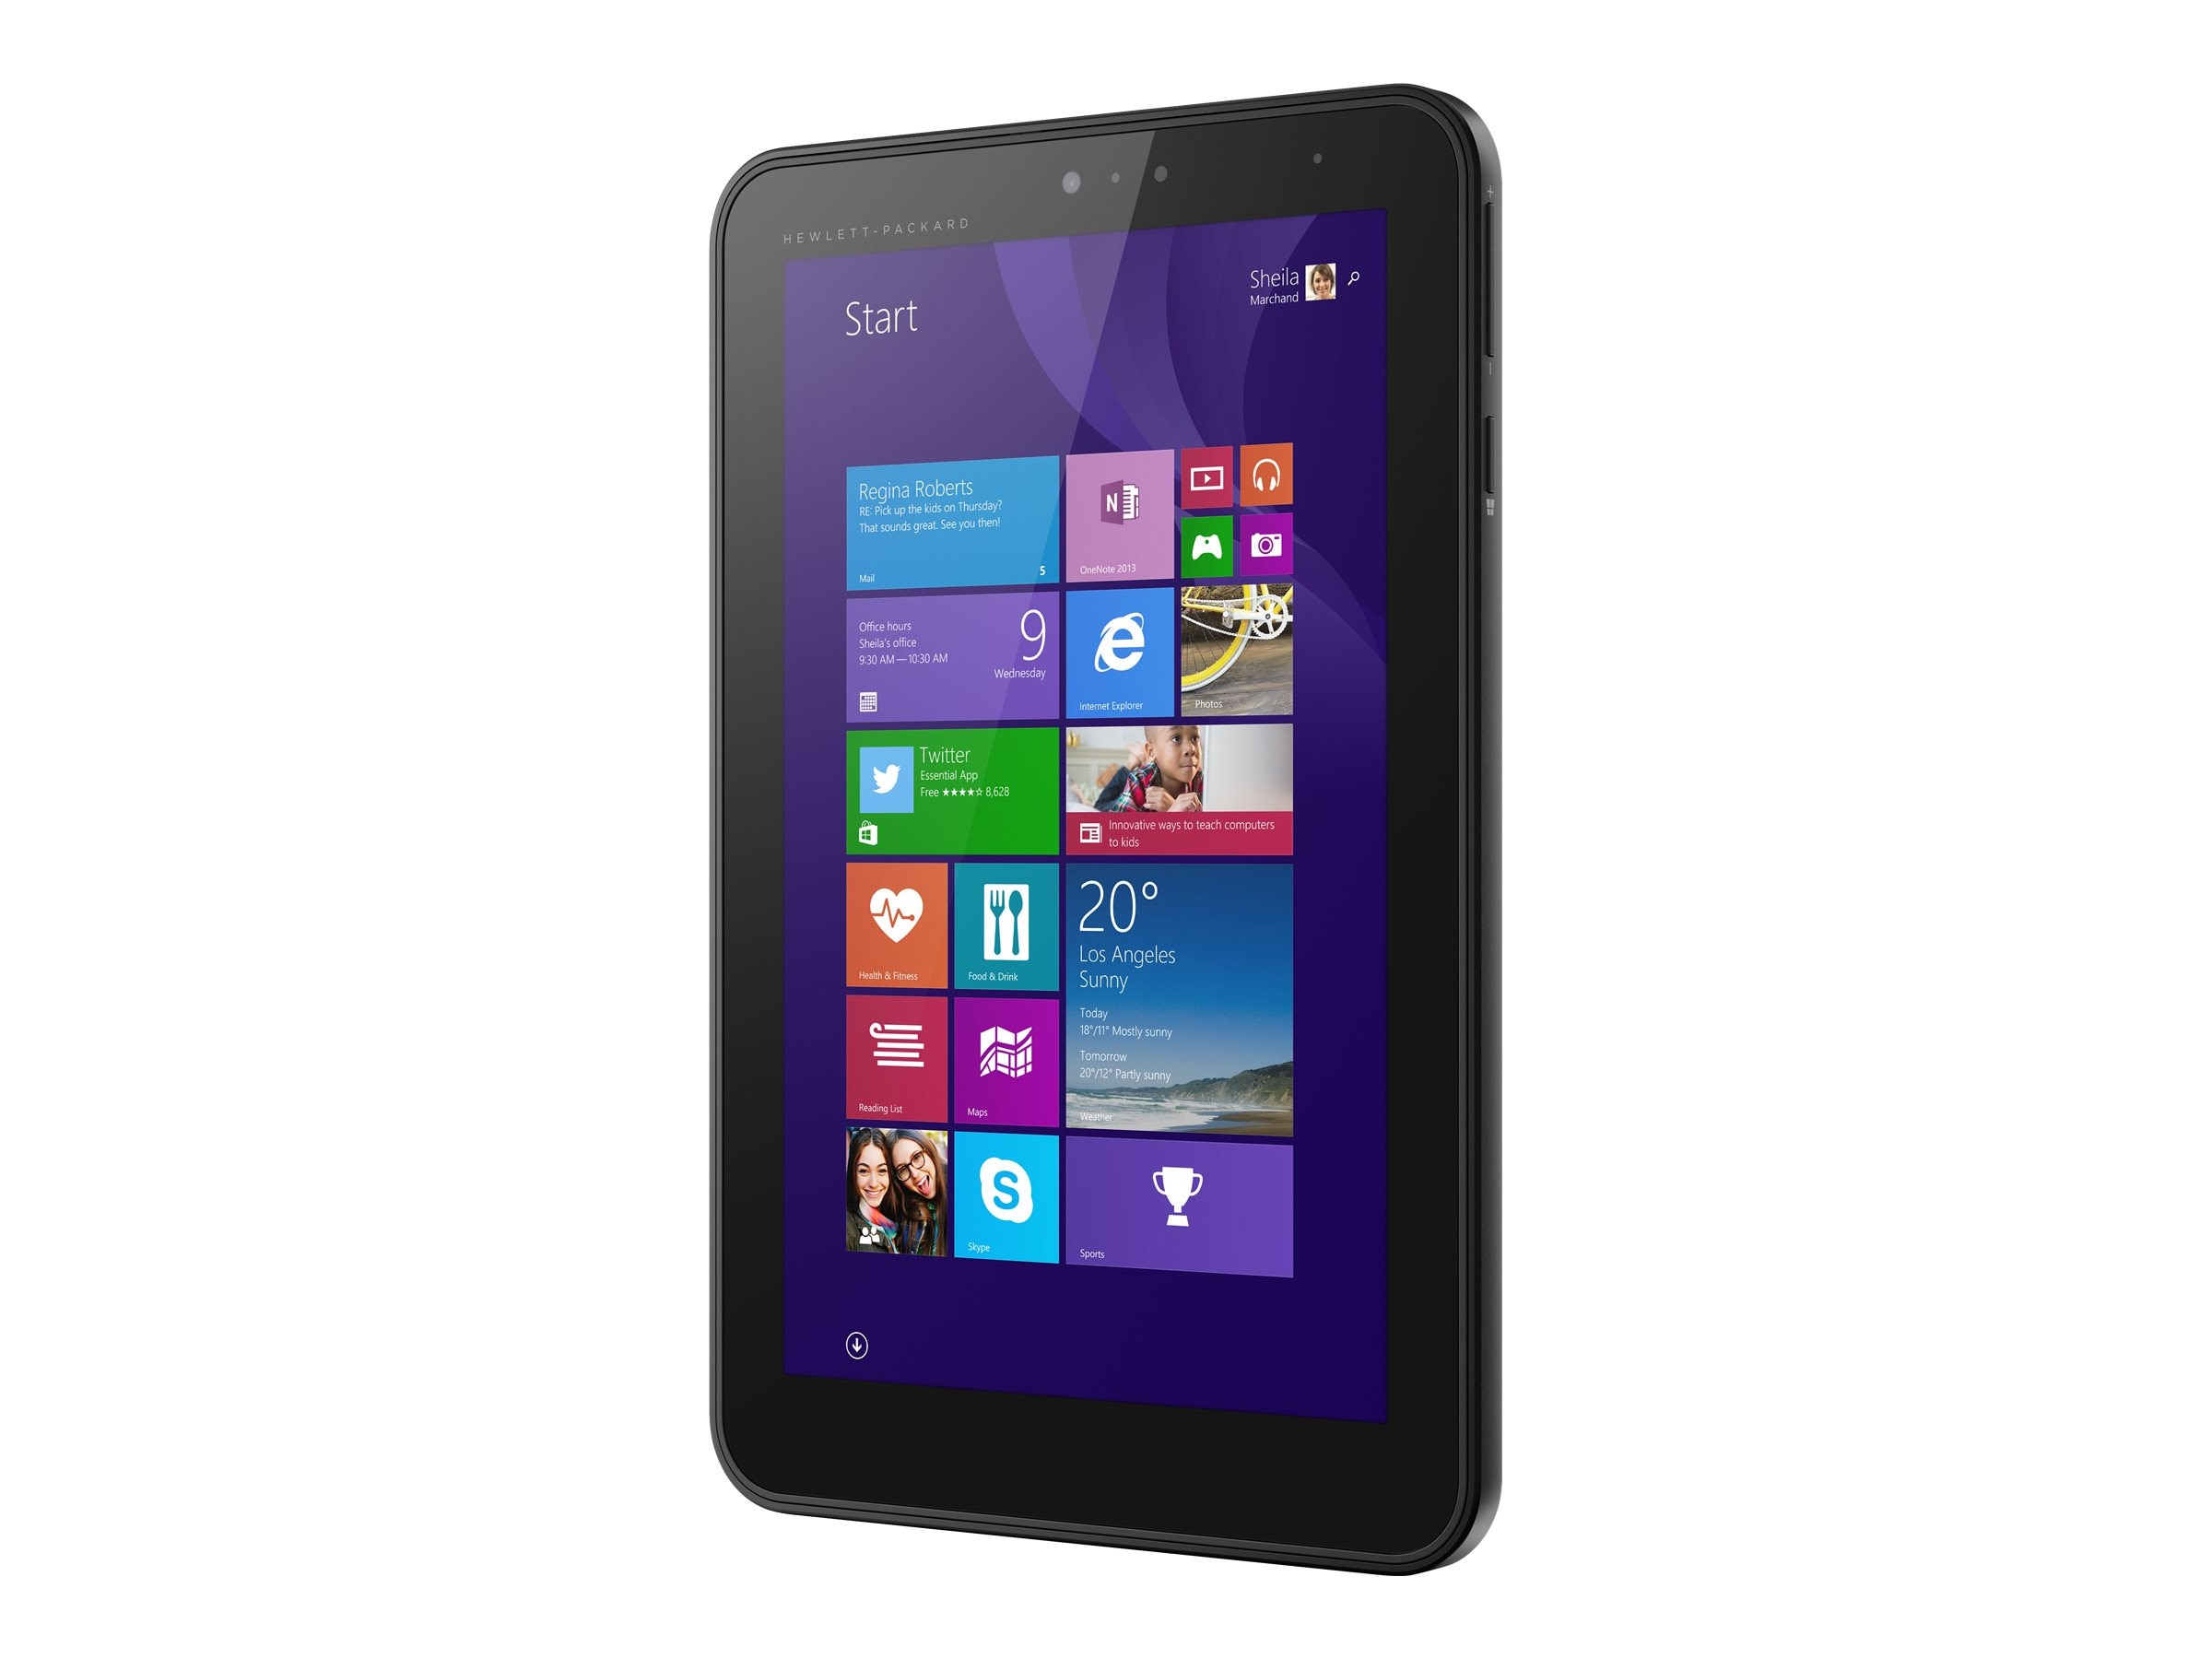 HP Pro Tablet 408 G1 1.33GHz processor Windows 8.1 Pro, L4A34UT#ABA, 18357745, Tablets